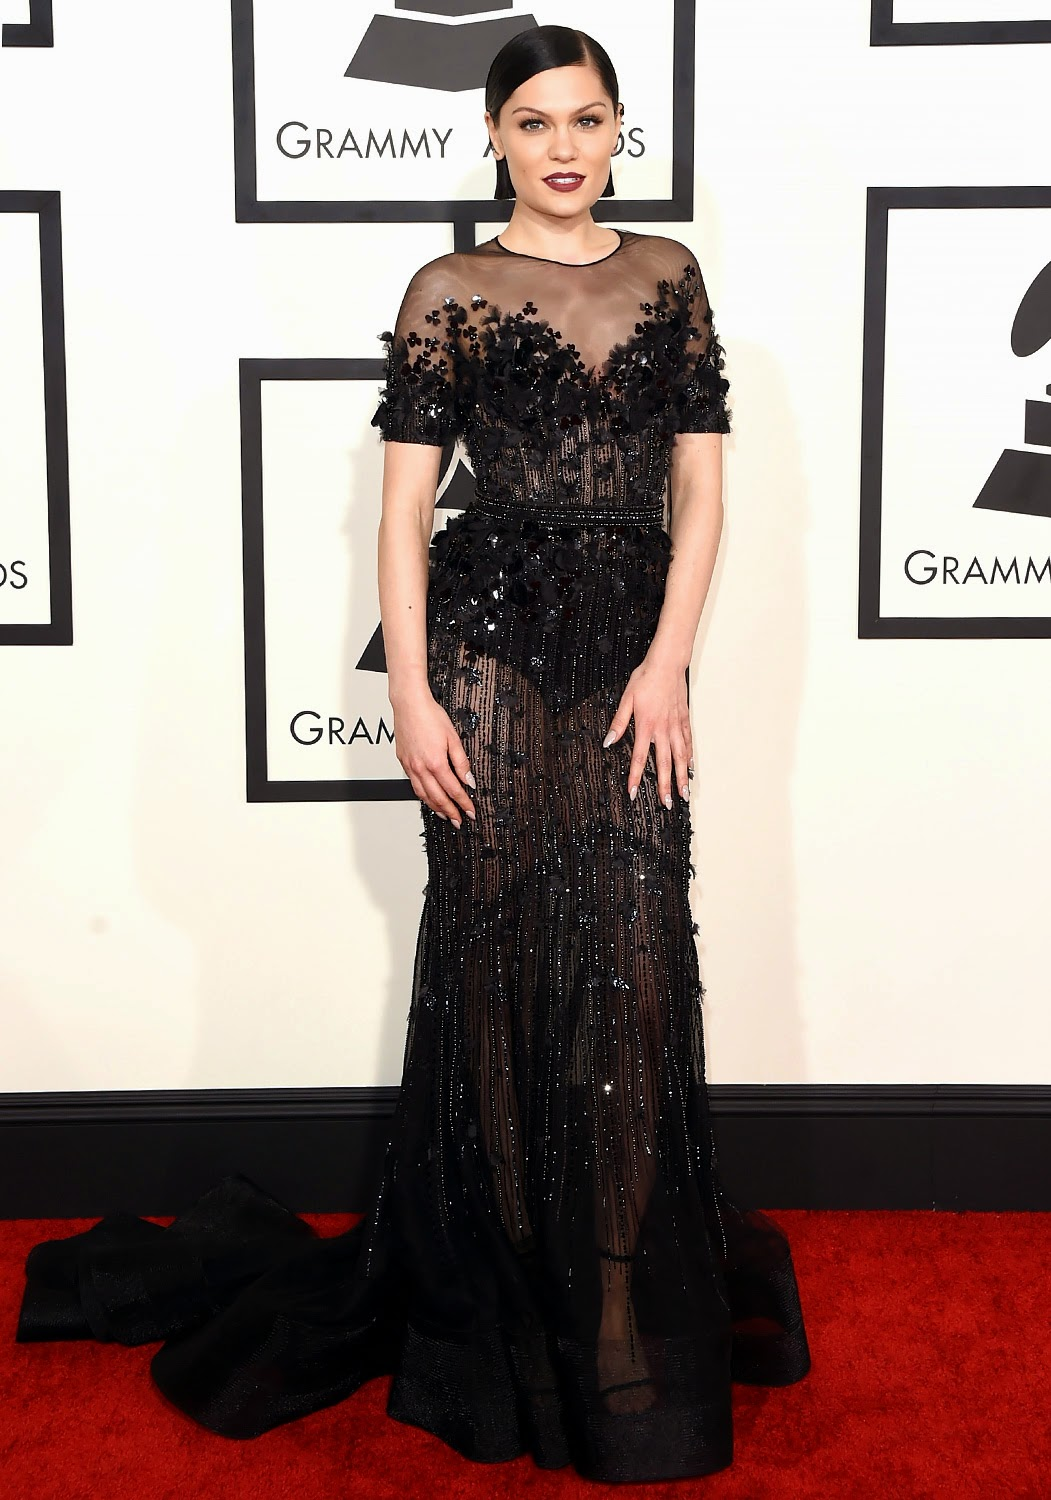 Favoritos dos Grammy Awards 2015